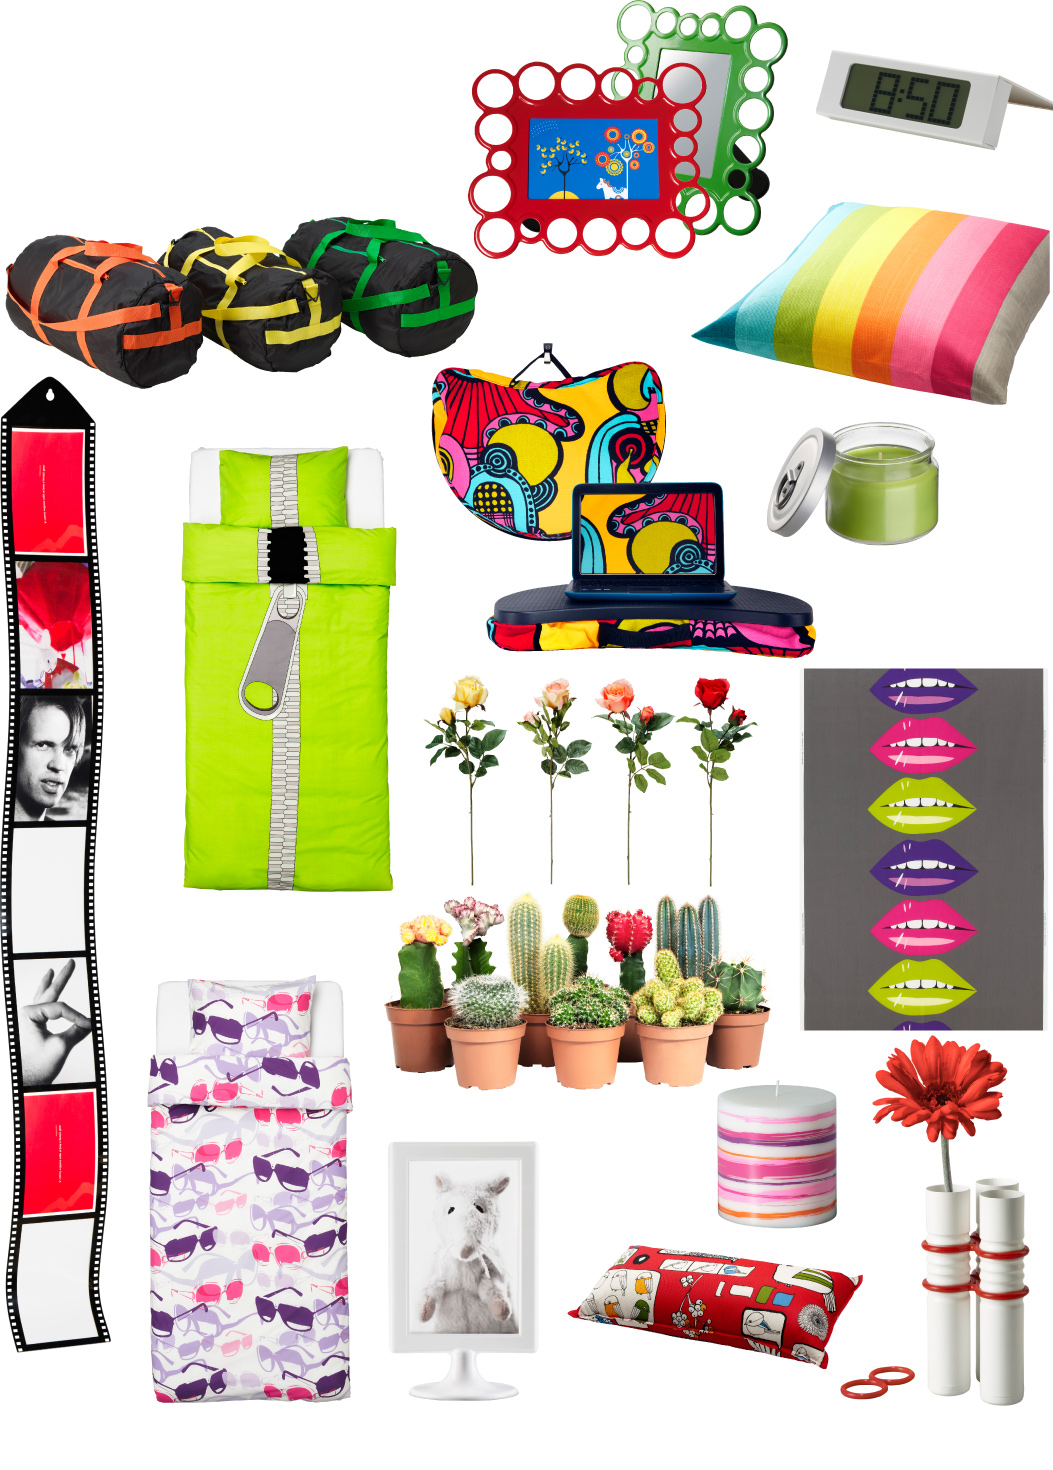 Decoracion habitacion peque a para ni os - Productos de decoracion ...